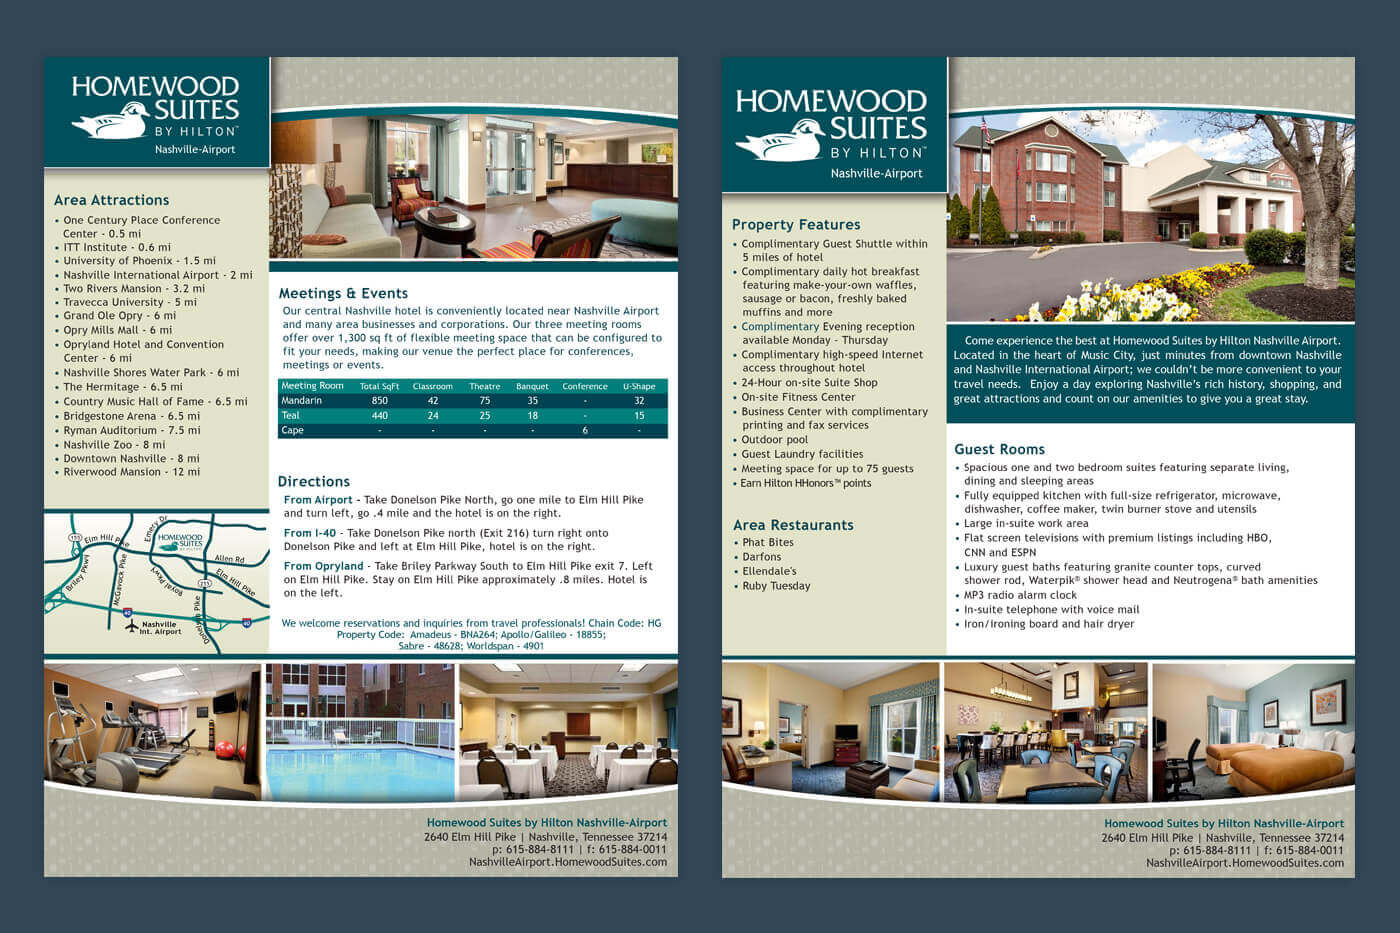 Advertising Collateral - Homewood Suites Nashville-Airport Brochure